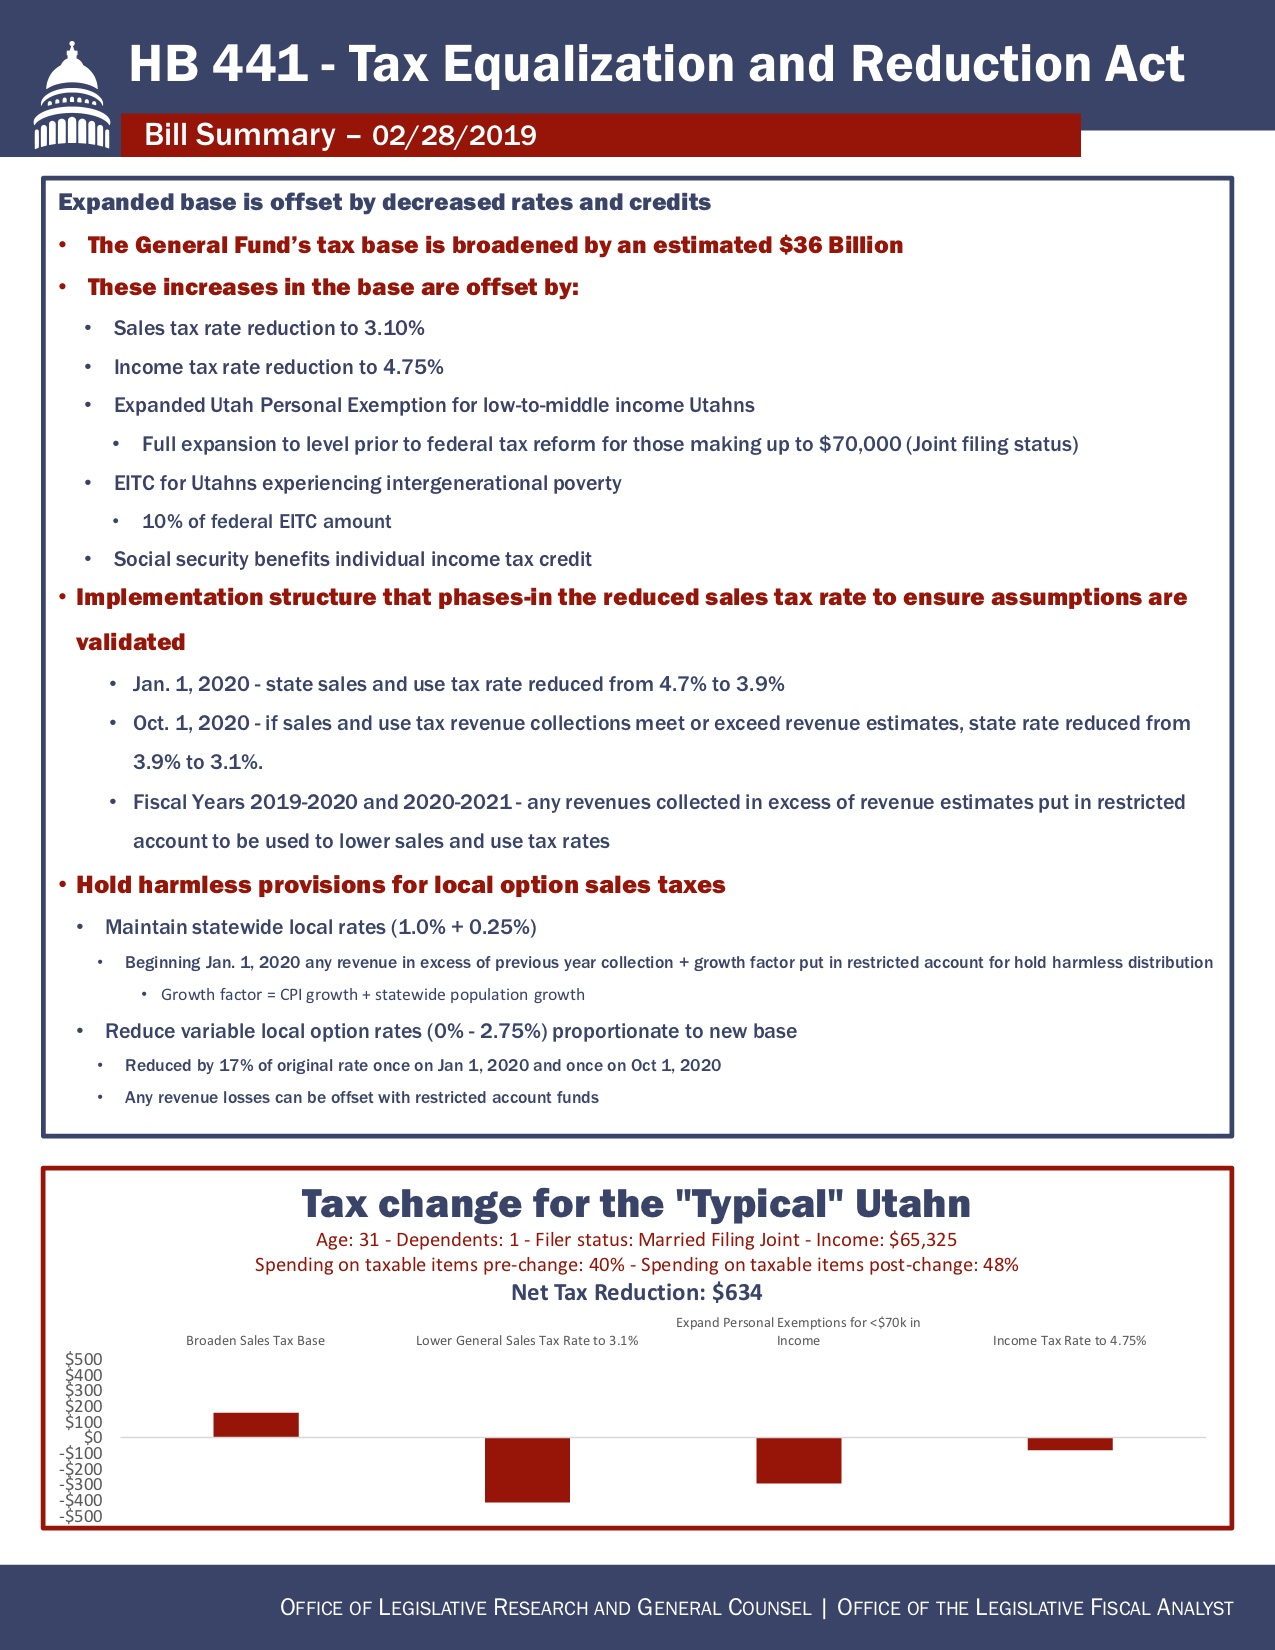 2 03-04 HB 441 Tax Equalization and Reduction Act Summary[2].jpg